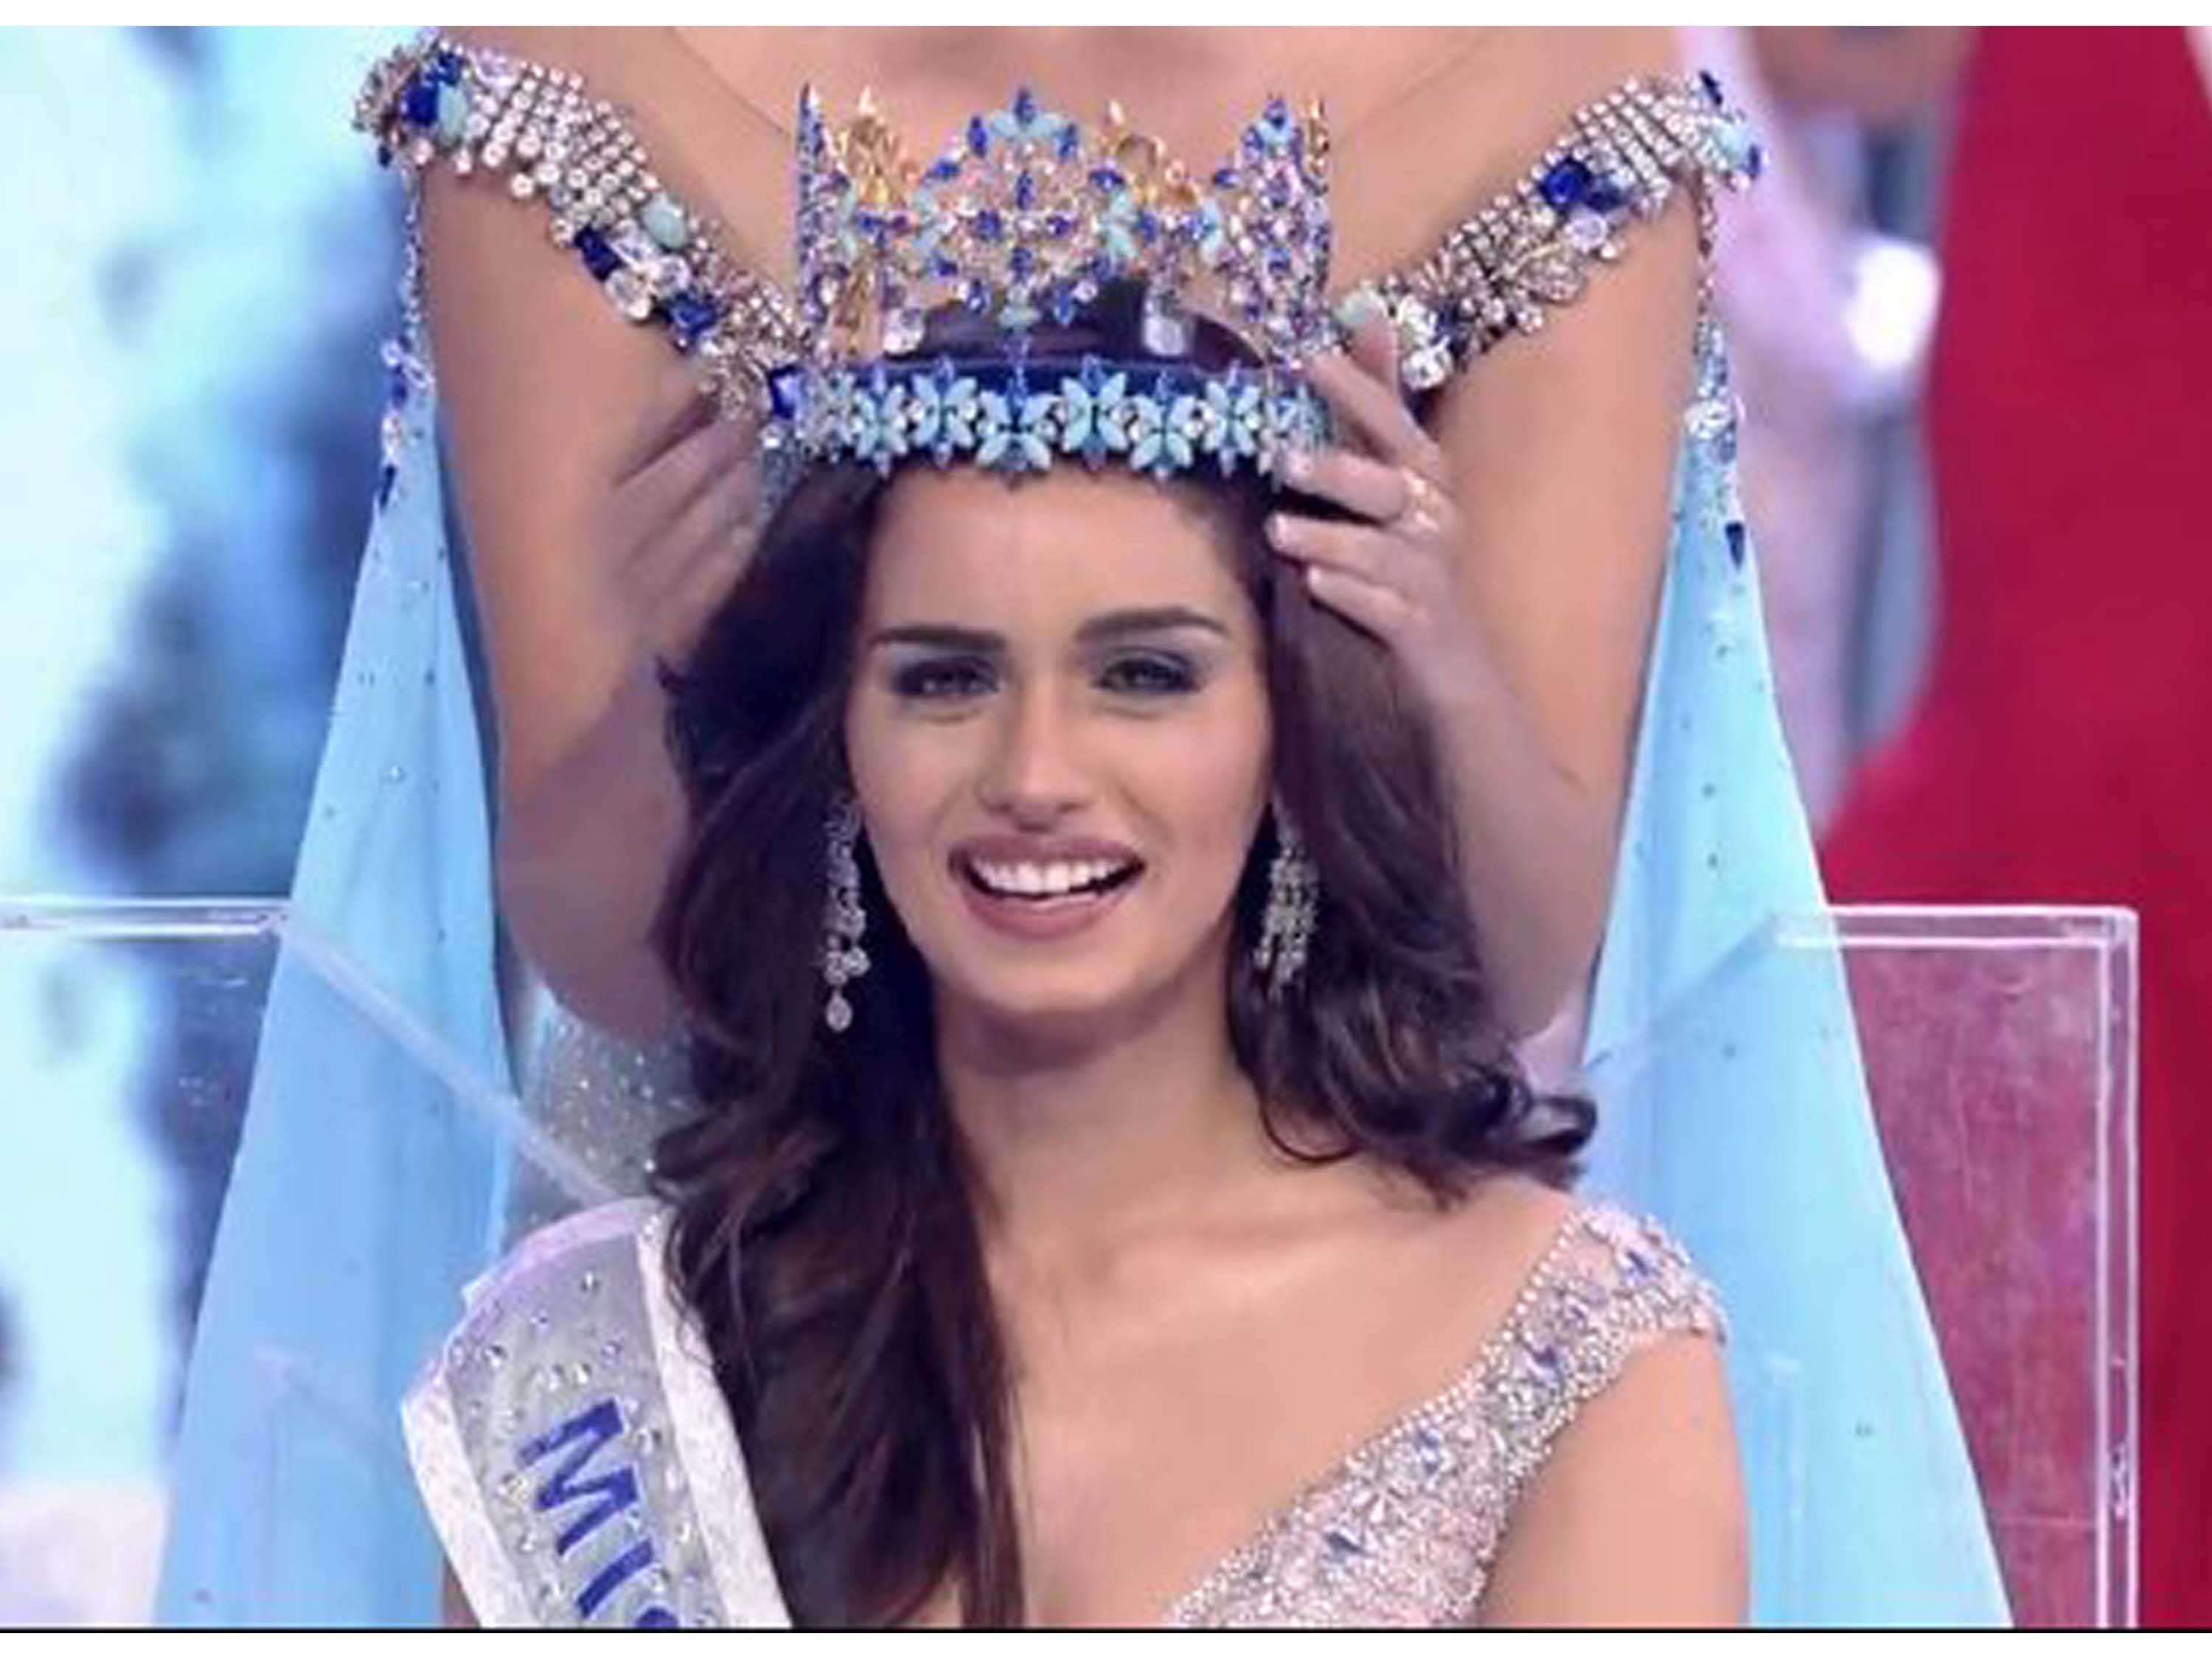 Who is Manushi Chhillar